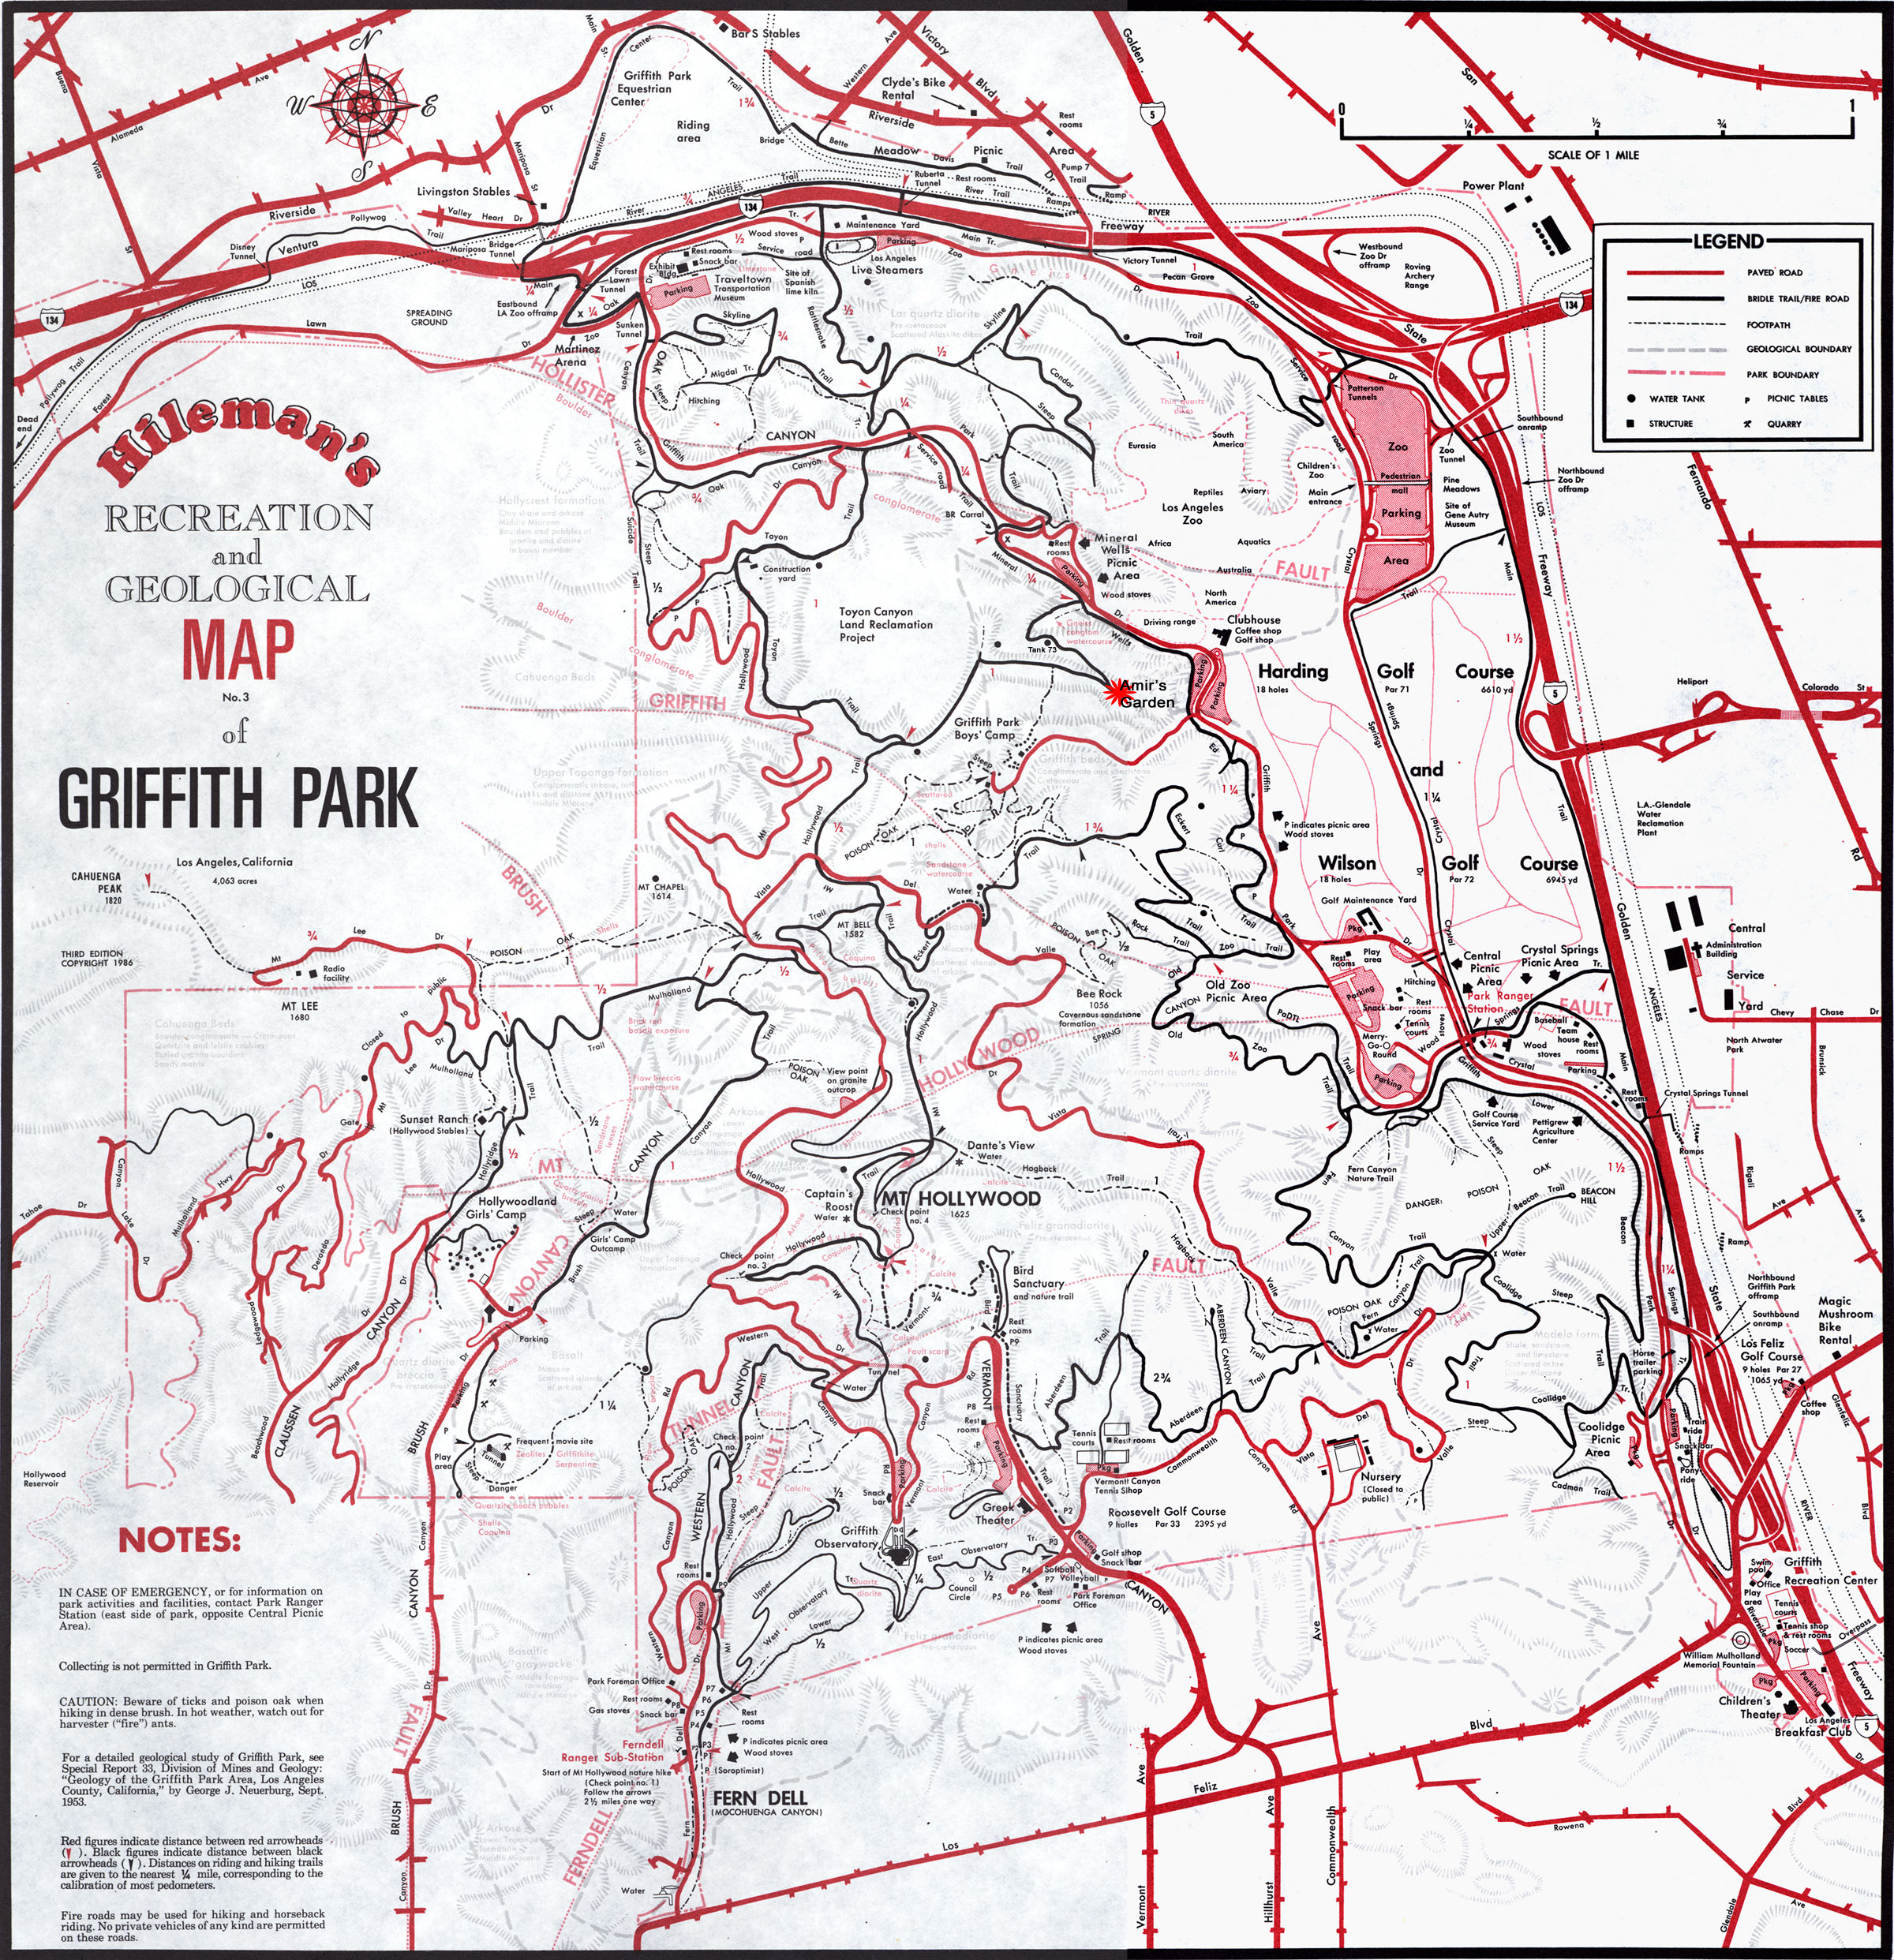 griffith park map - Amirs Garden